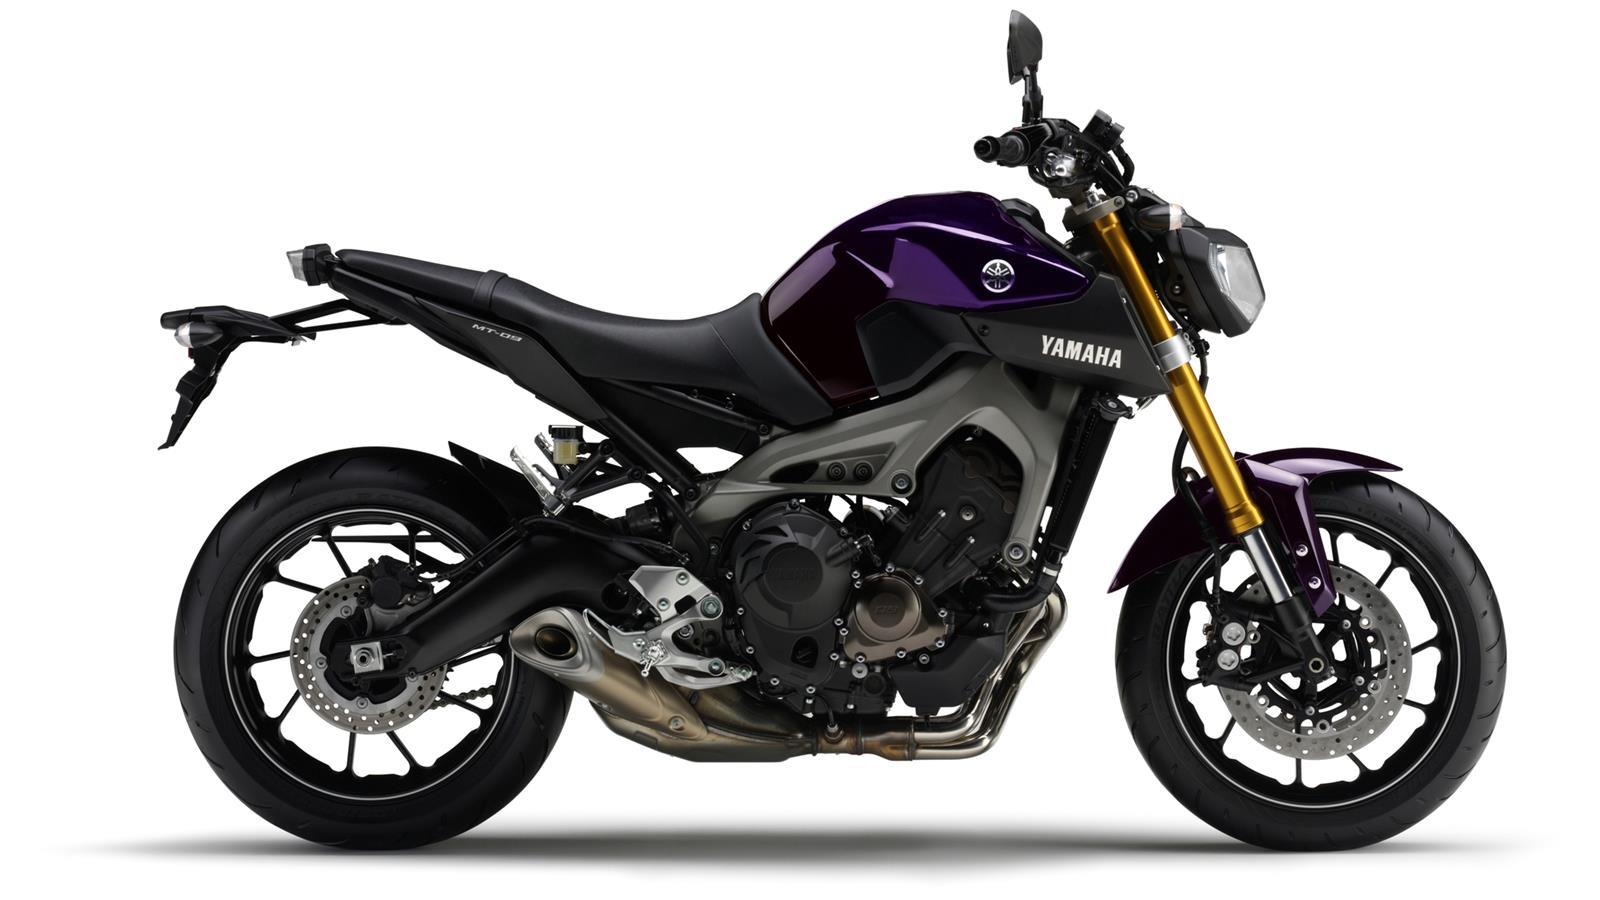 http://www.motorrad-bilder.at/slideshows/291/009617/2014-Yamaha-MT-09-EU-Deep-Armor-Studio-002.jpg